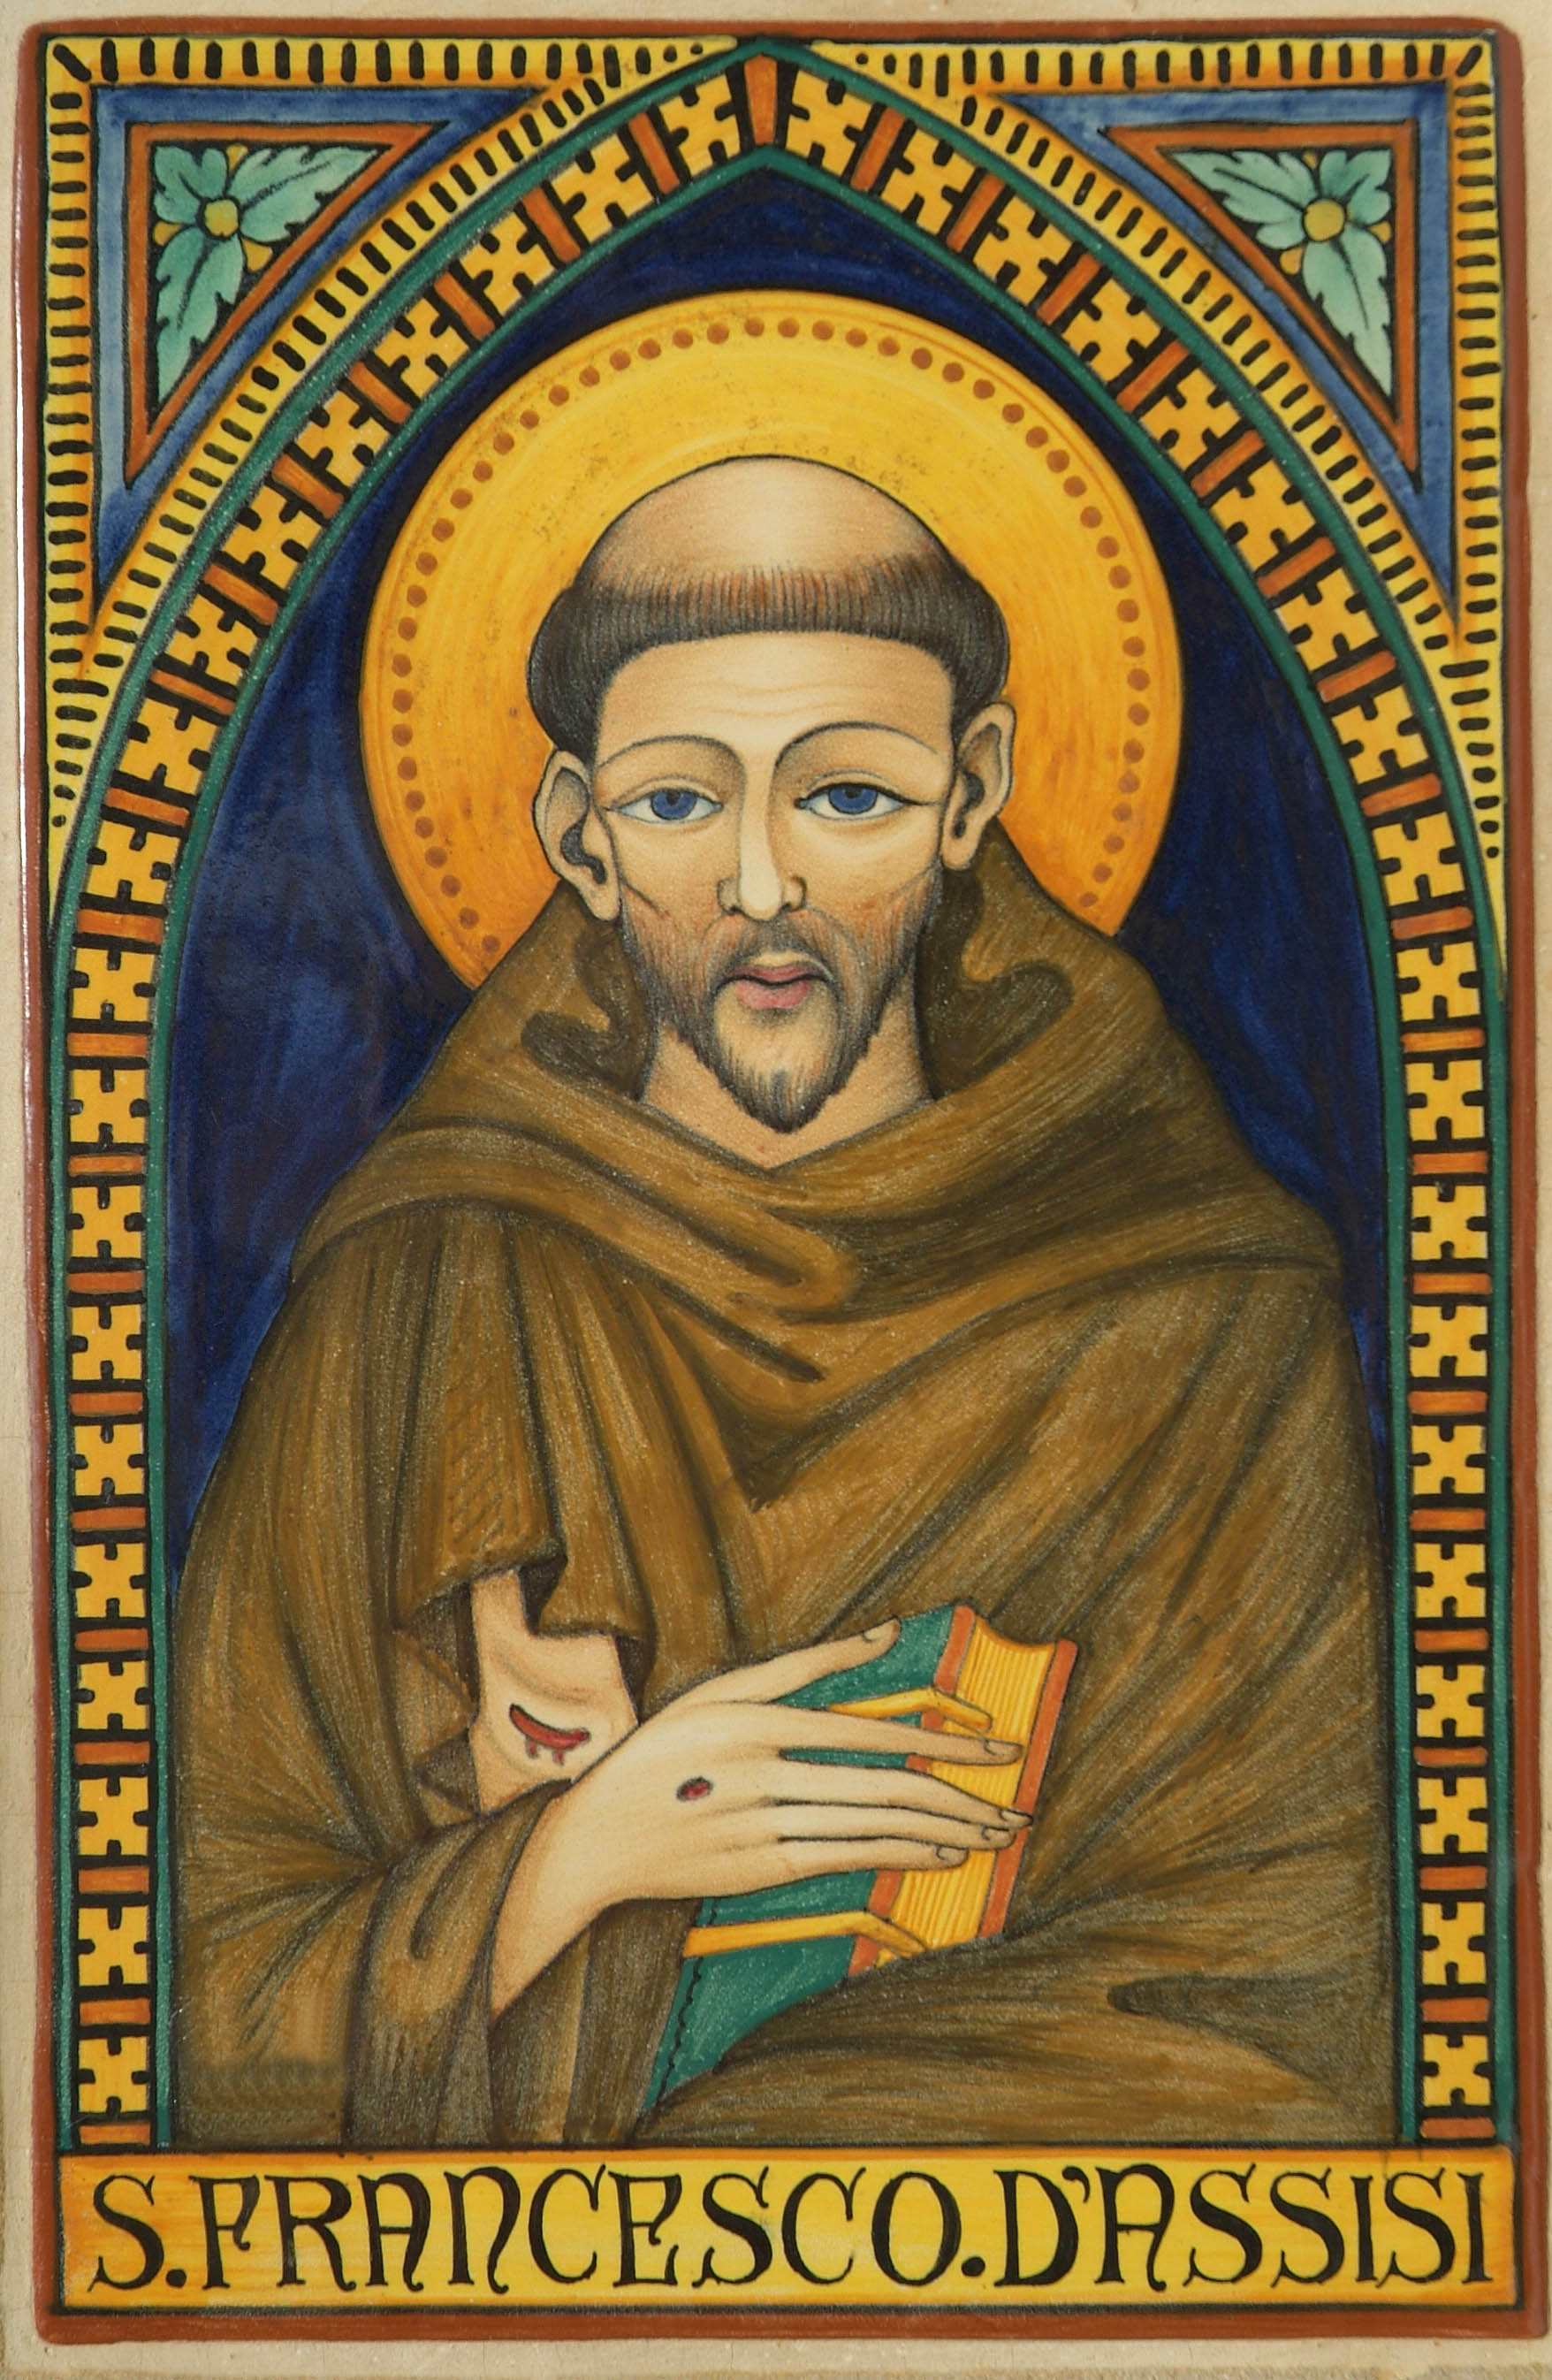 S. Francesco d'Assisi